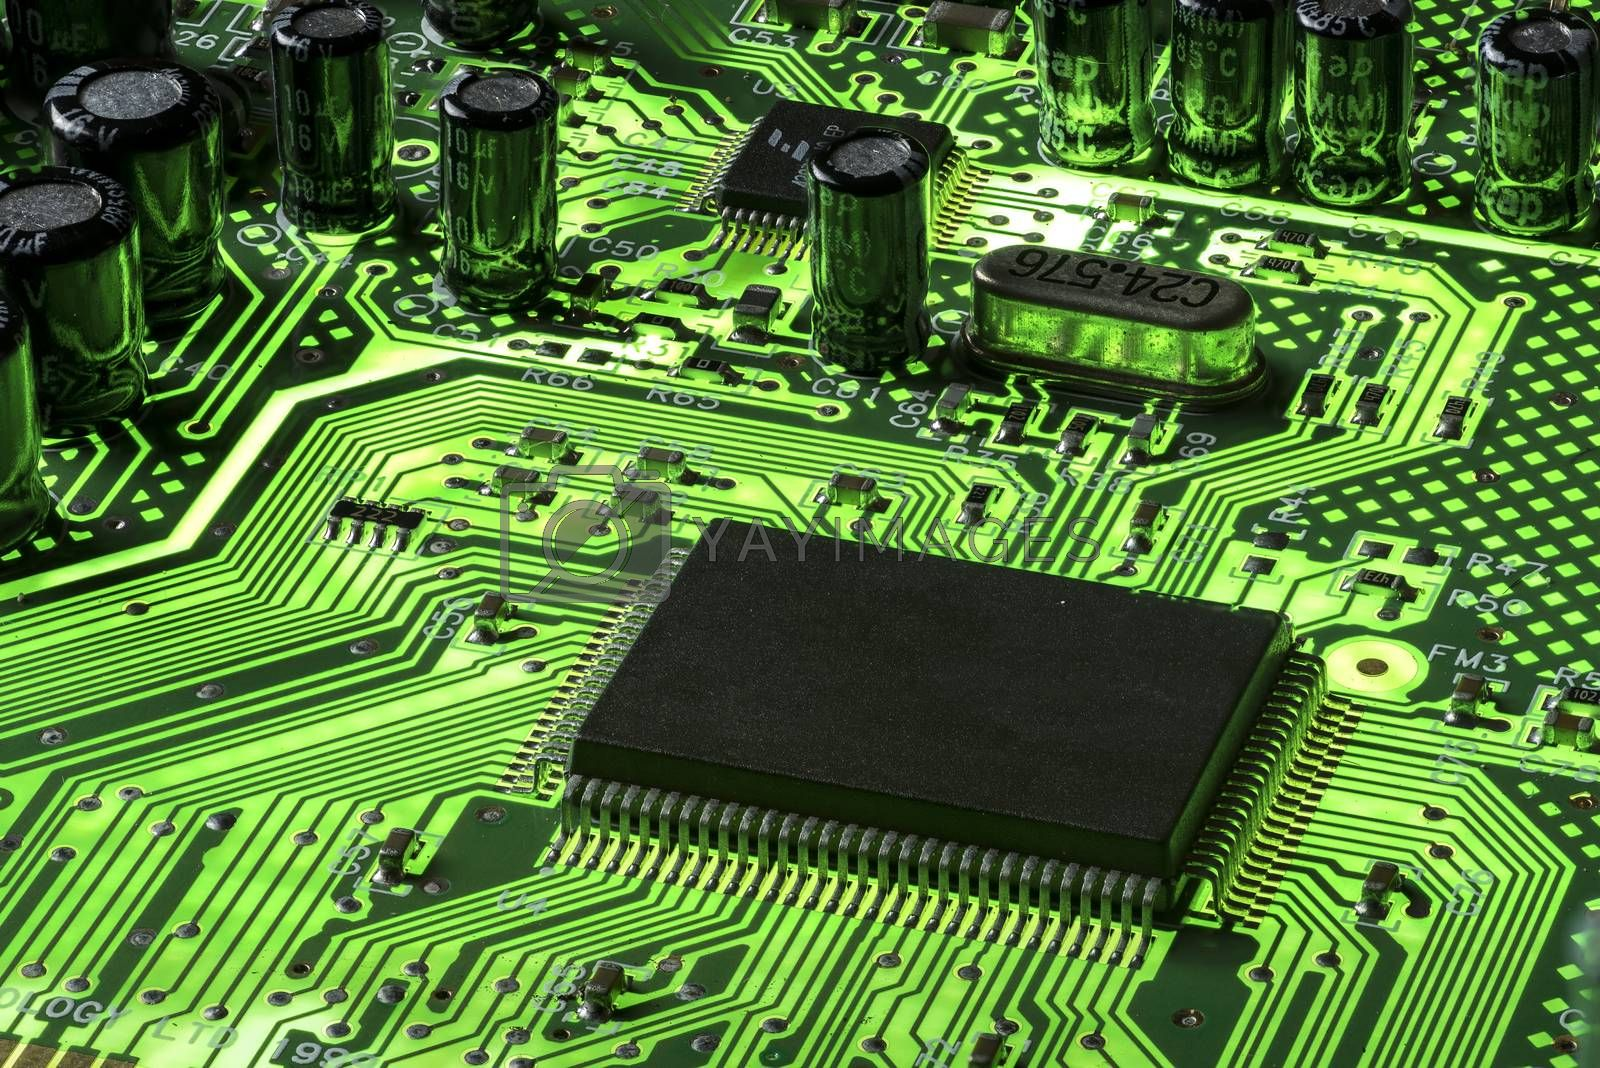 Green Mother board fluorescent with a black CPU and other components